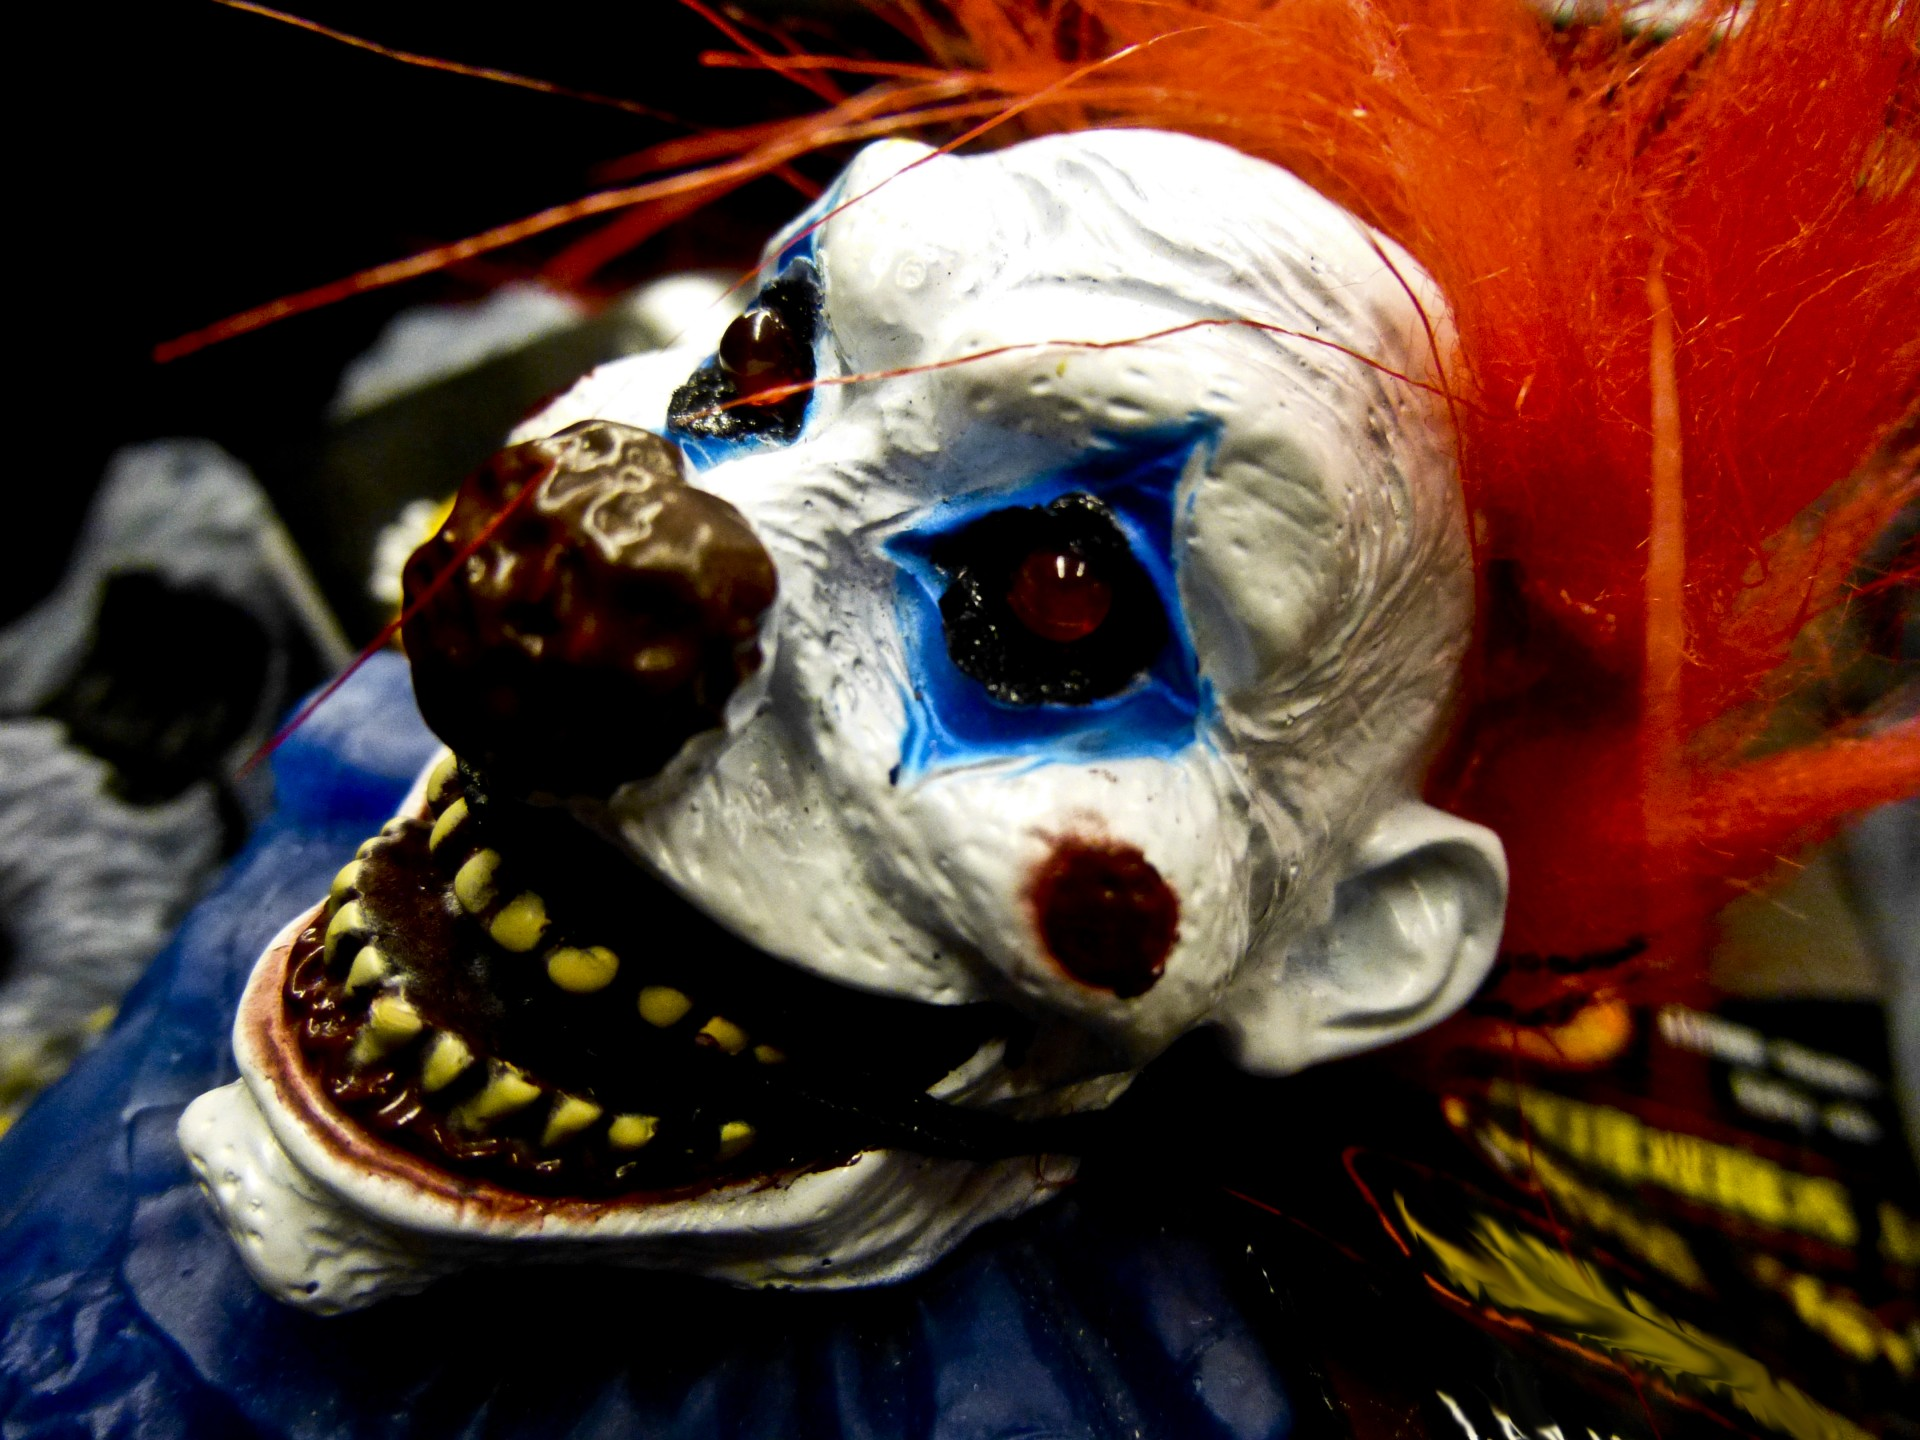 Why are killer clowns are causing havoc in the UK?